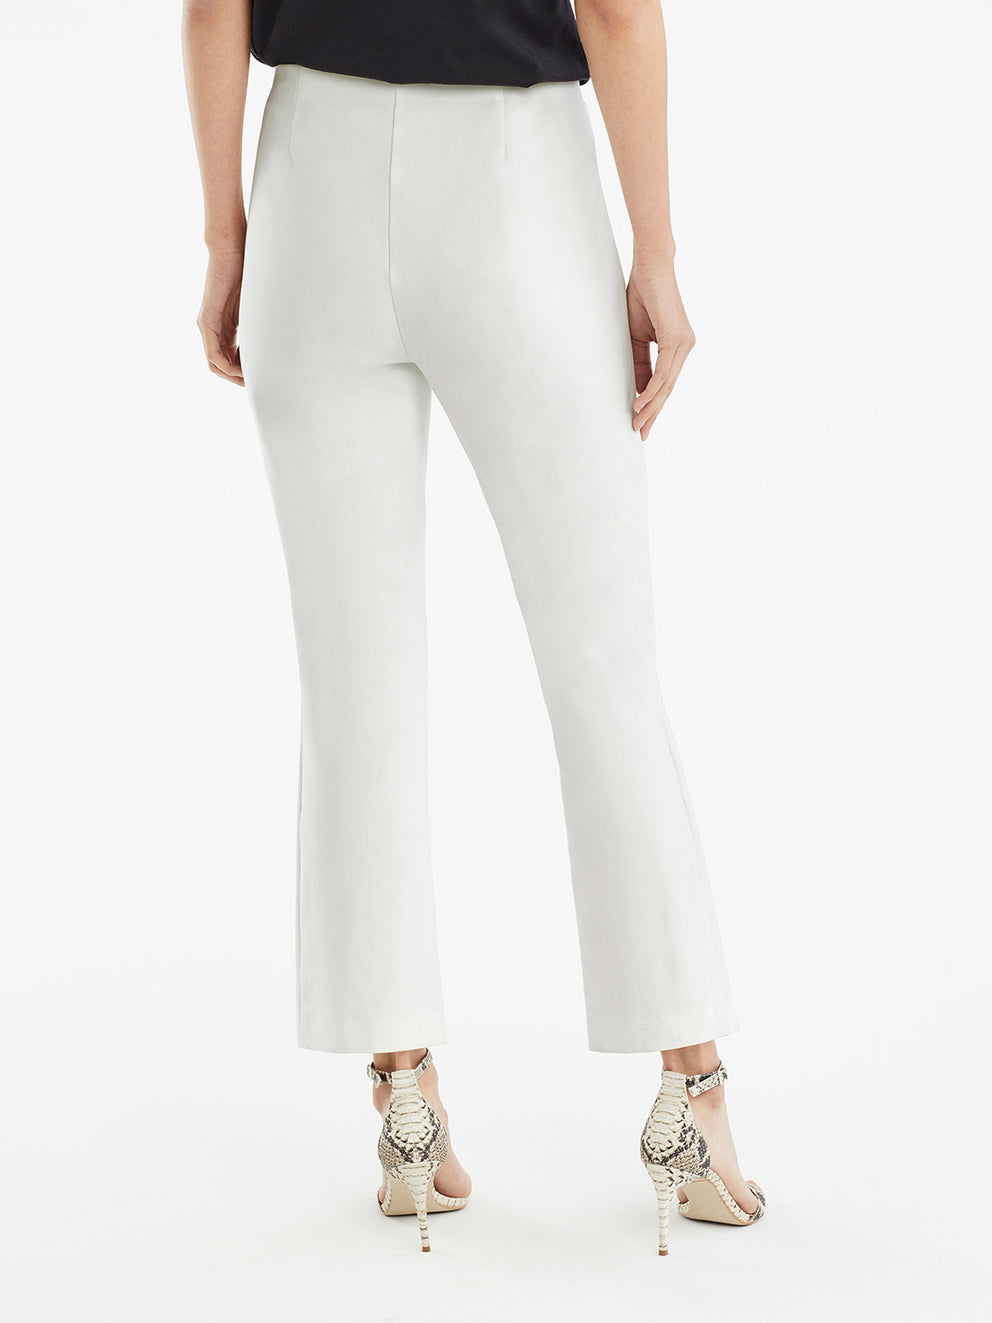 The Jones New York Clean Pull-On Pant in color Ivory - Image Position 3